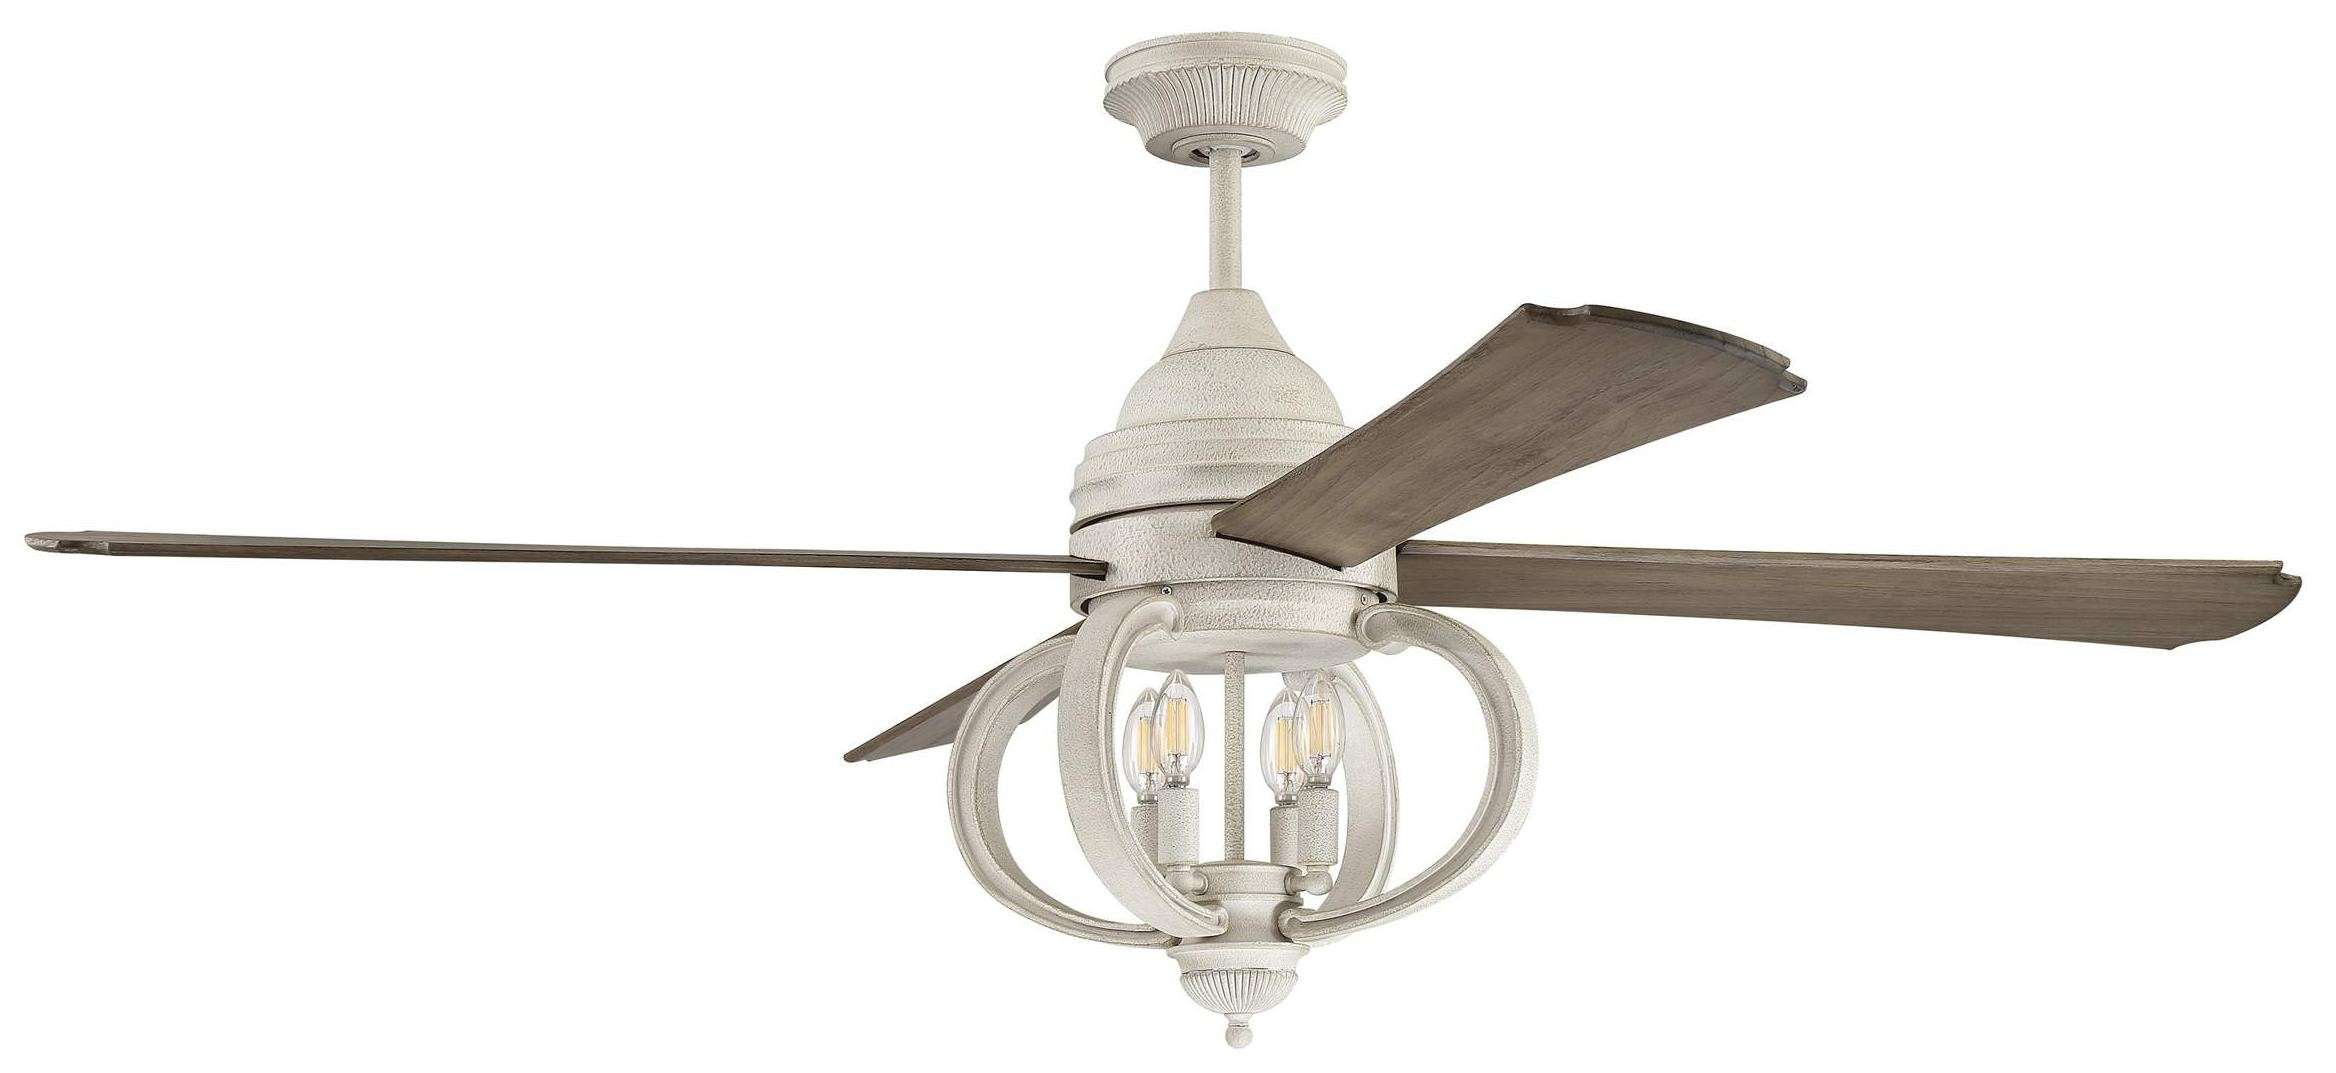 Craftmade AUG60CW4 Augusta 60 Inch Ceiling Fan w/Blades & Light Kit In Cottage White